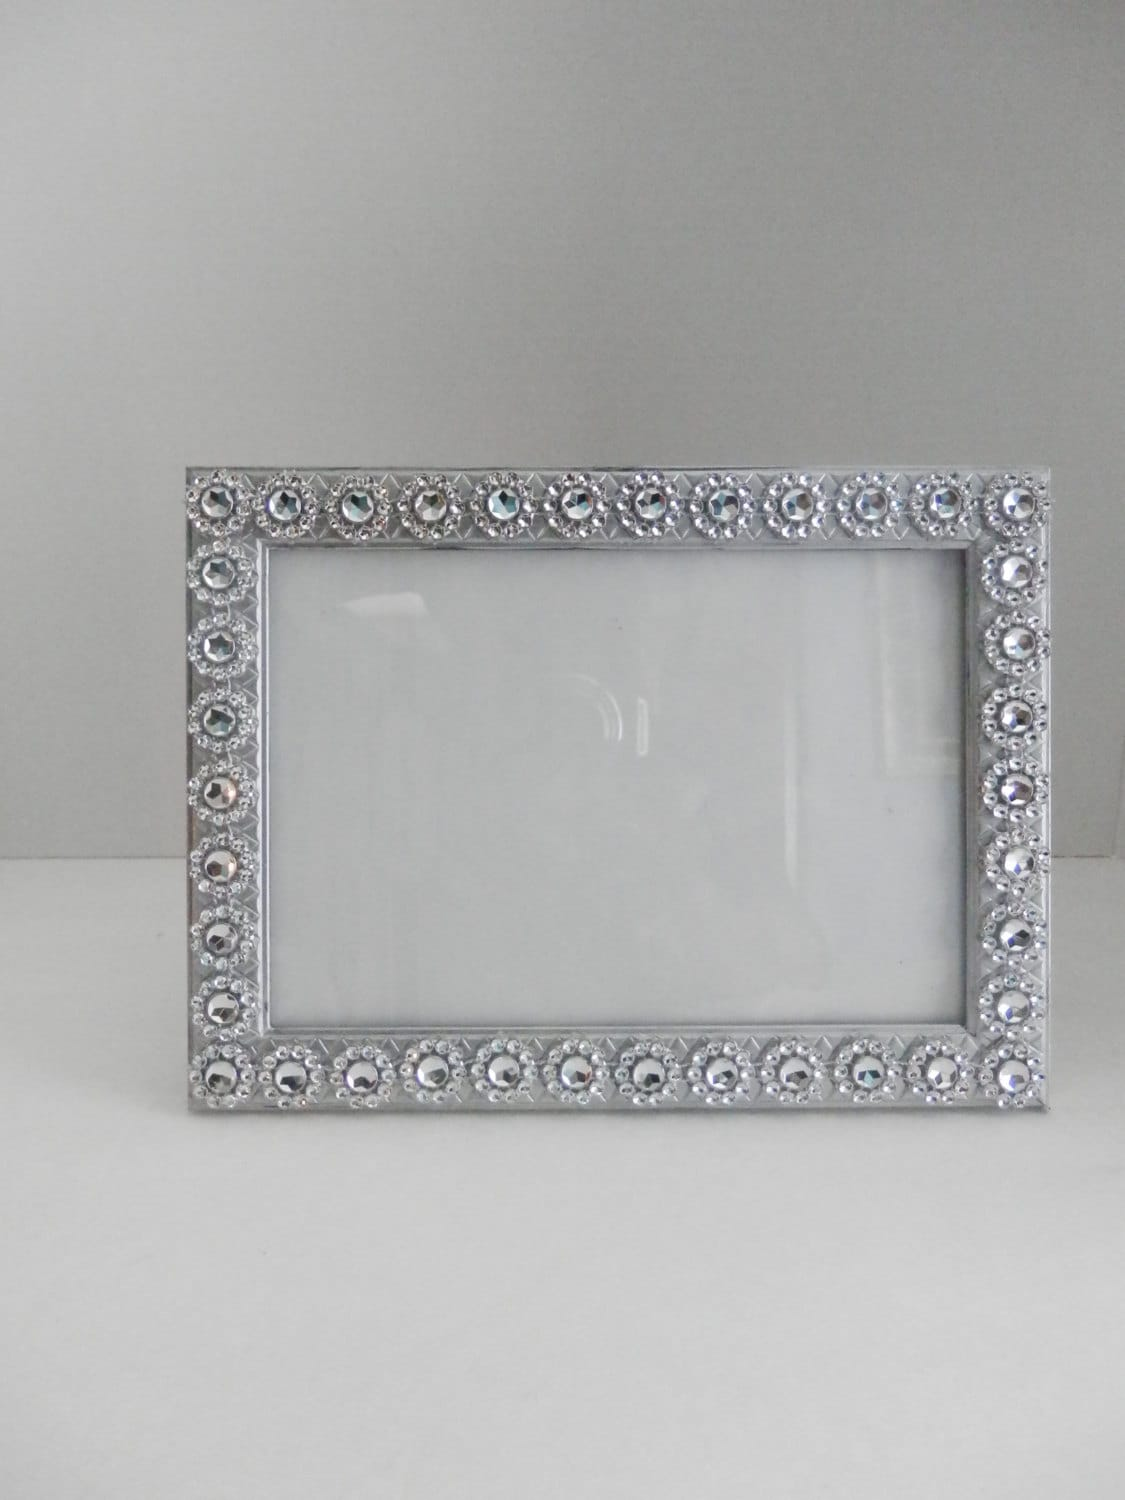 wedding picture frame 5x7 silver wedding glass picture. Black Bedroom Furniture Sets. Home Design Ideas